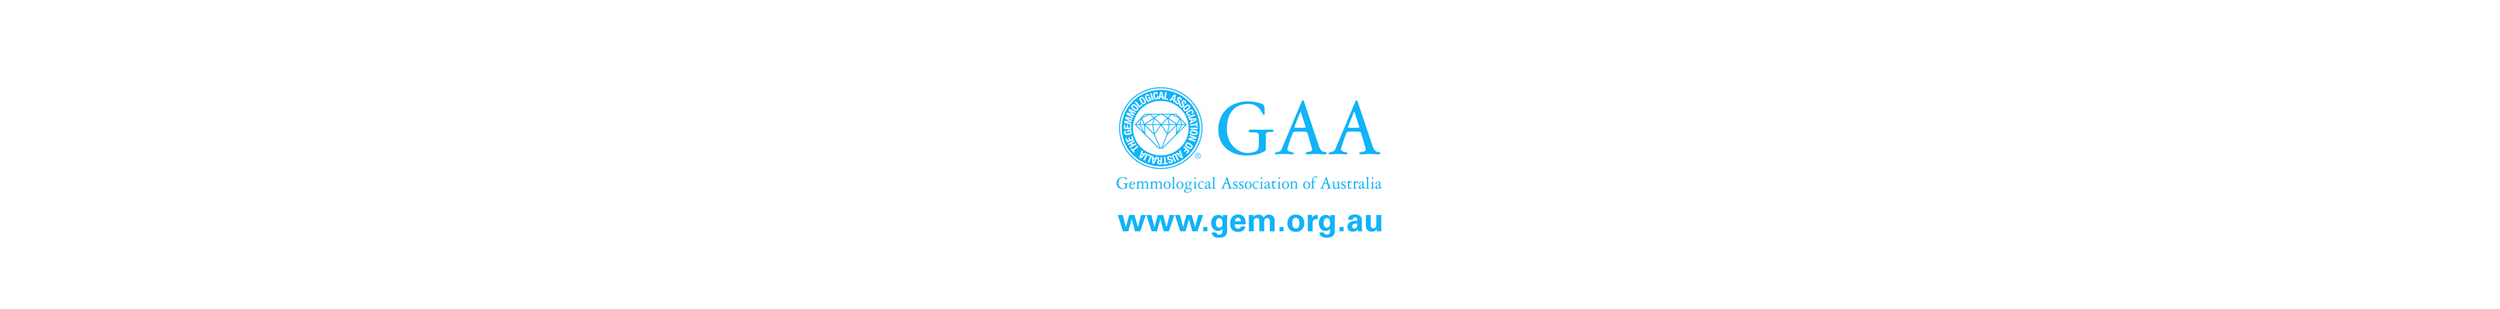 GAA gemological institute of australia logo2